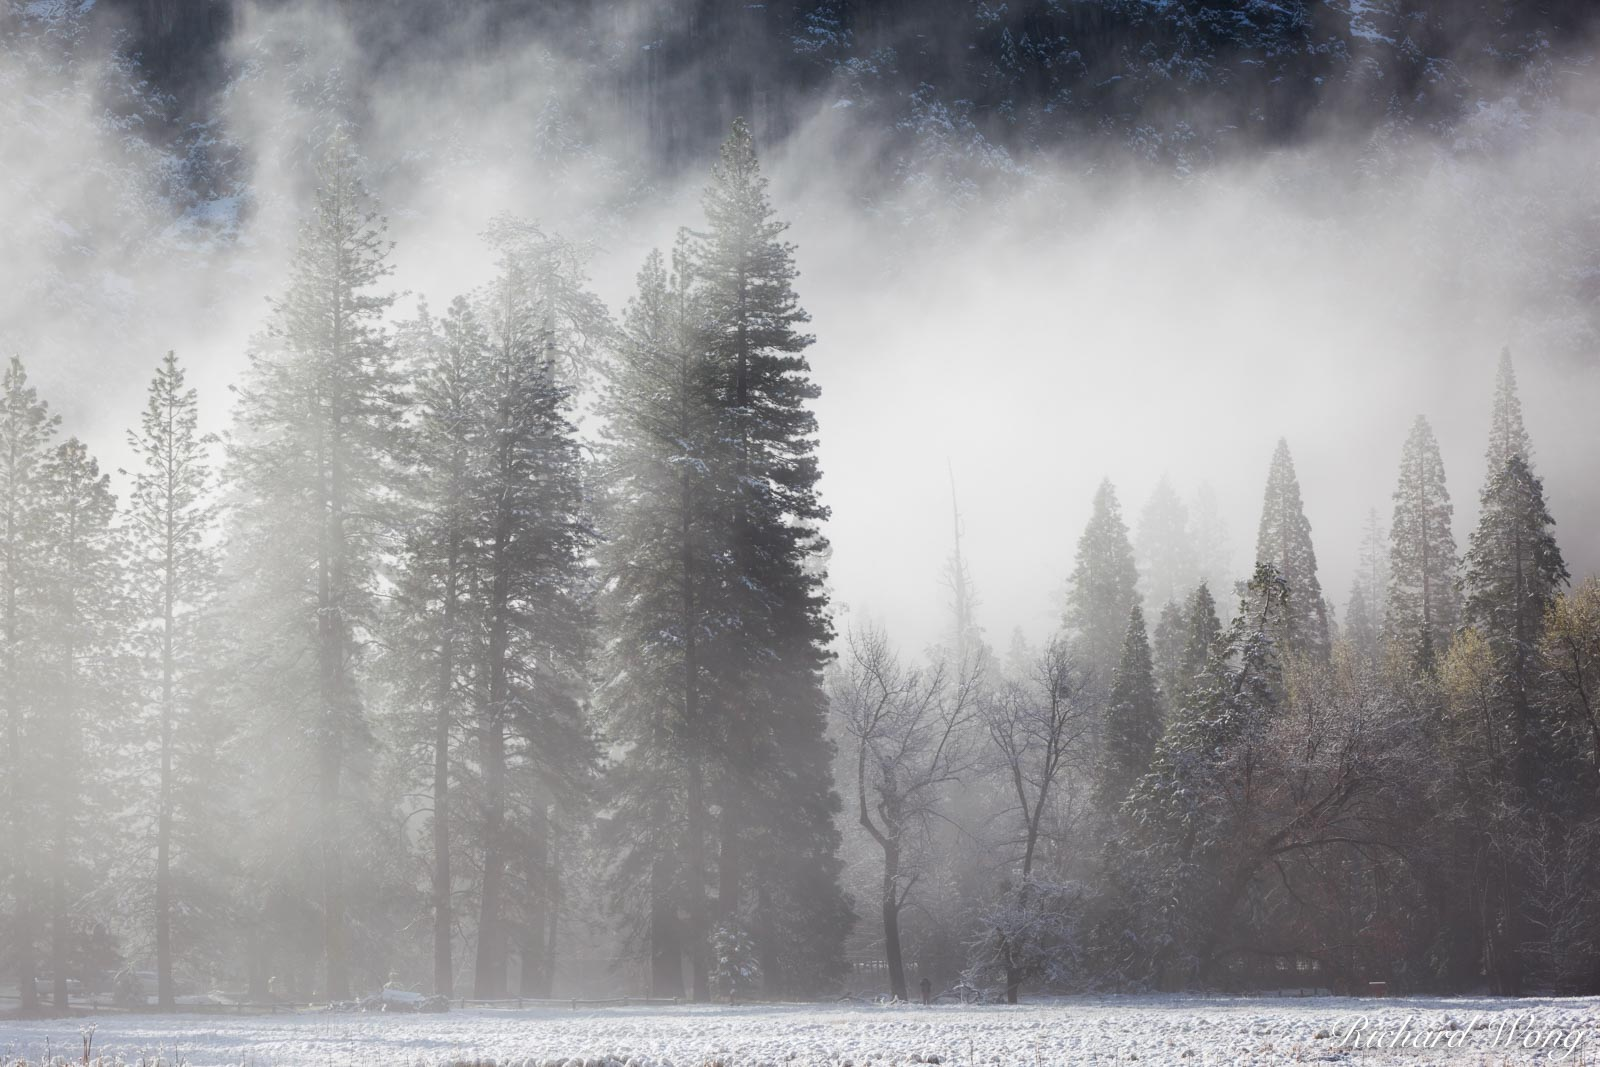 Foggy Spring Morning After Snowstorm in Cook's Meadow, Yosemite National Park, California, photo, photo